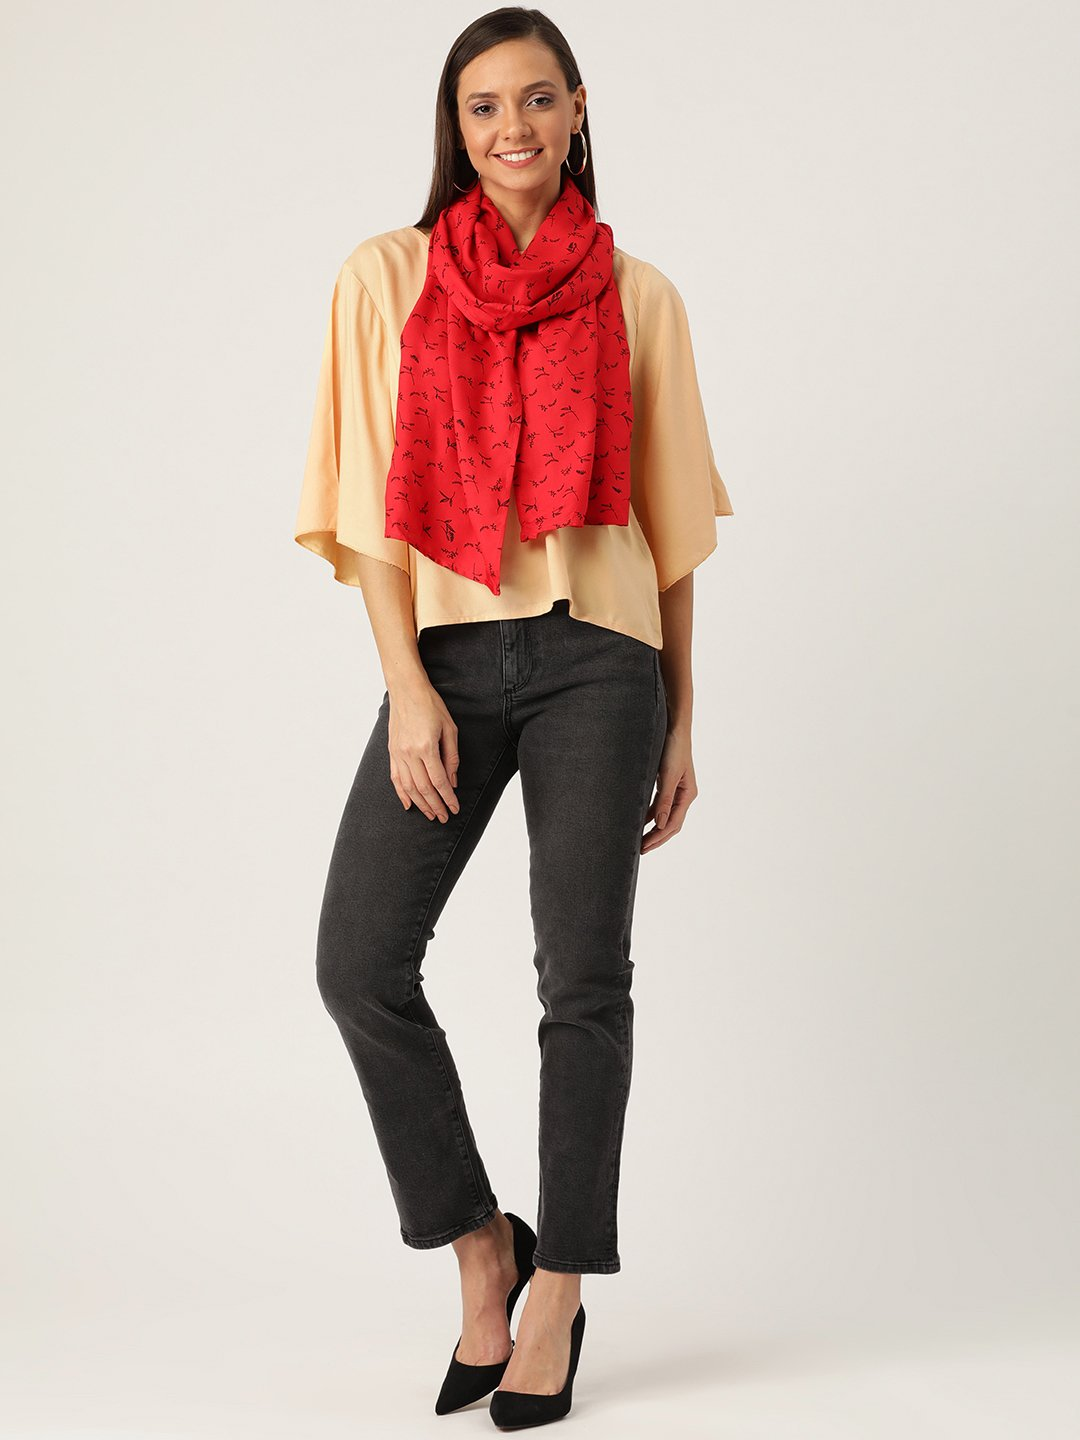 Beige Top With Red Stole